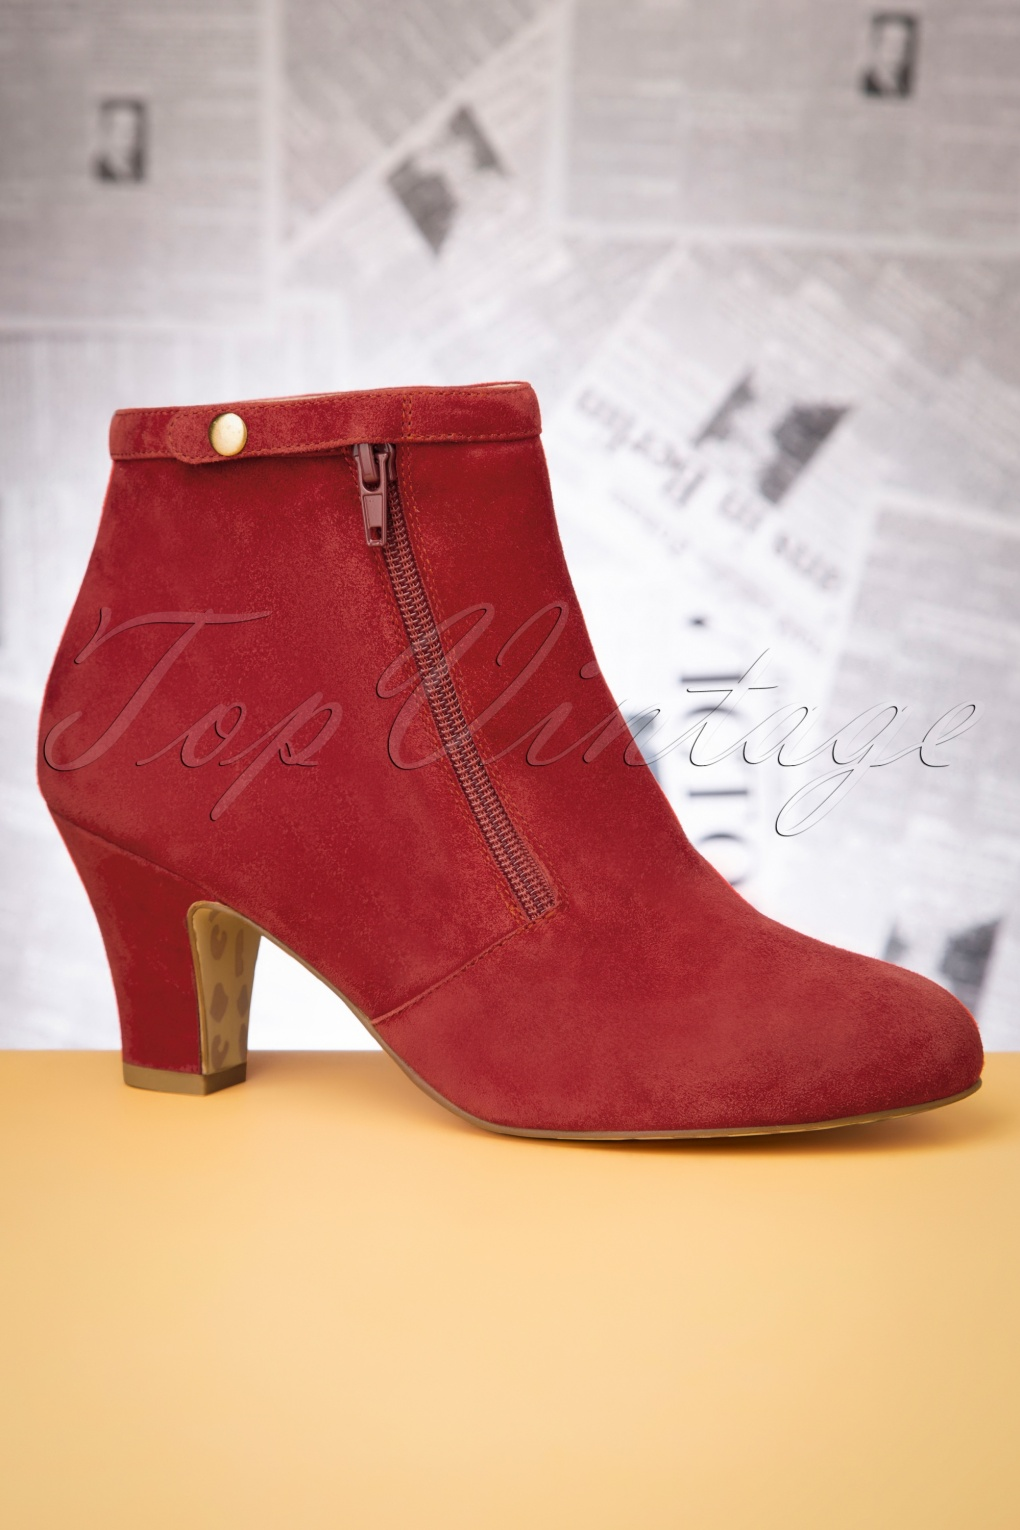 1940s Style Shoes, 40s Shoes 40s Ava Return To Sender Booties in Warm Red £120.74 AT vintagedancer.com